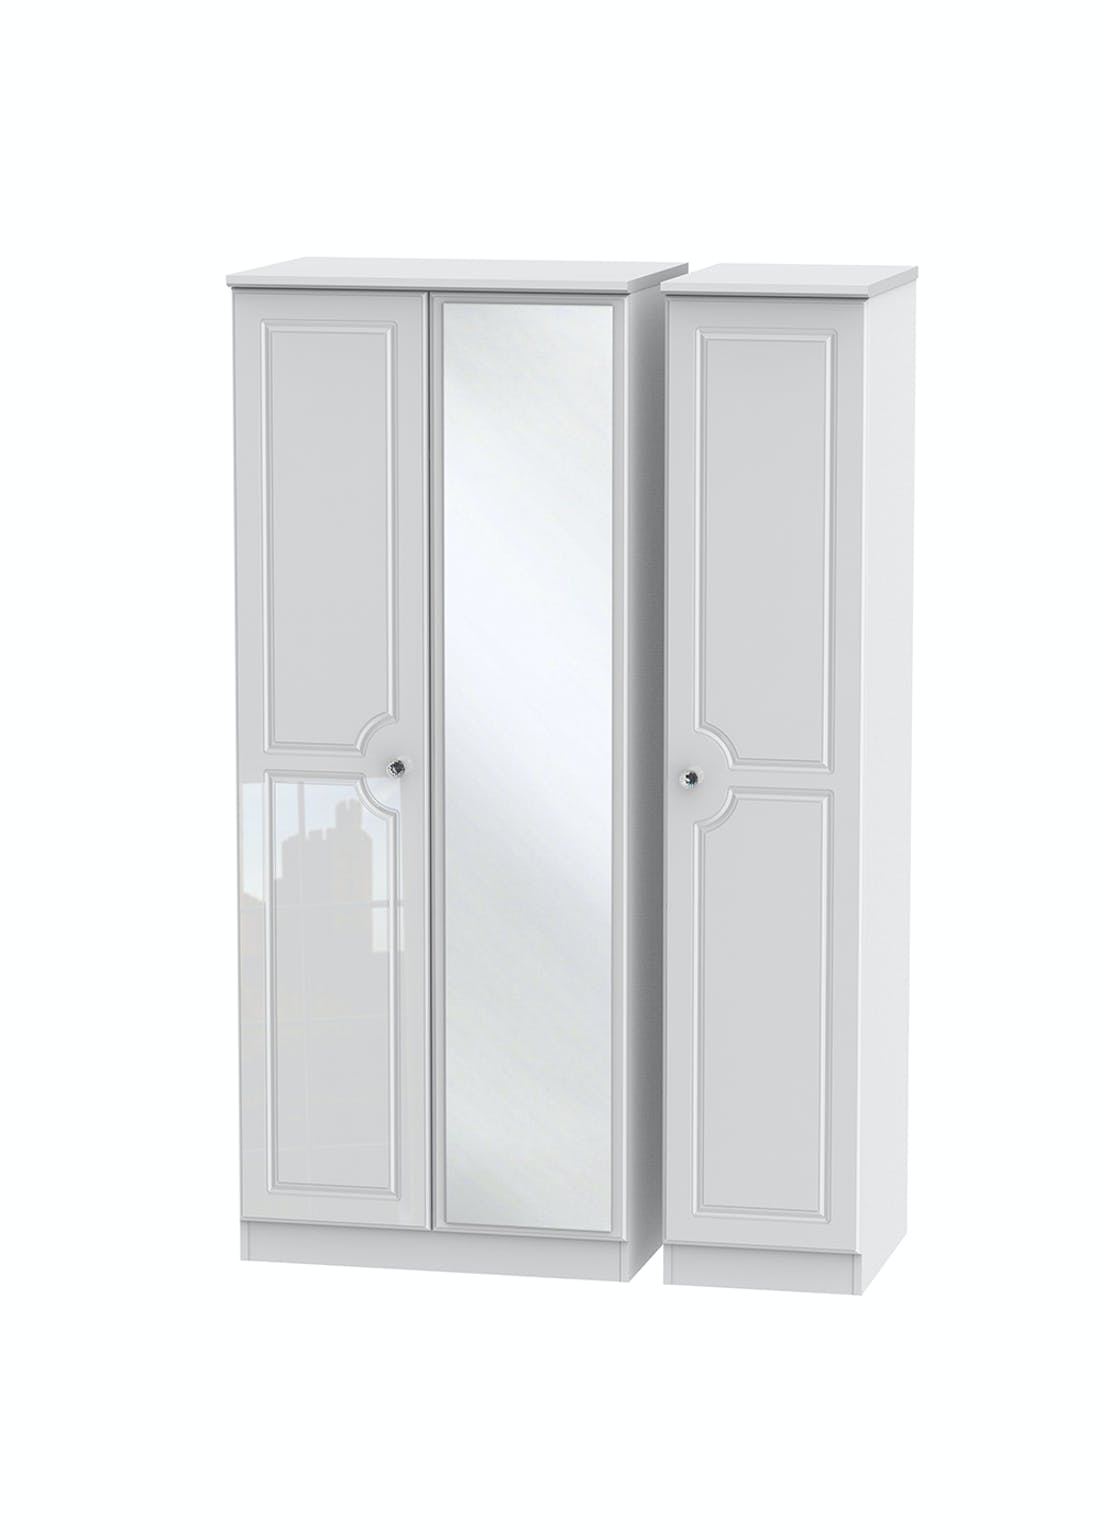 Swift Marlborough Triple Wardrobe (182.5cm x 111cm x 53cm)